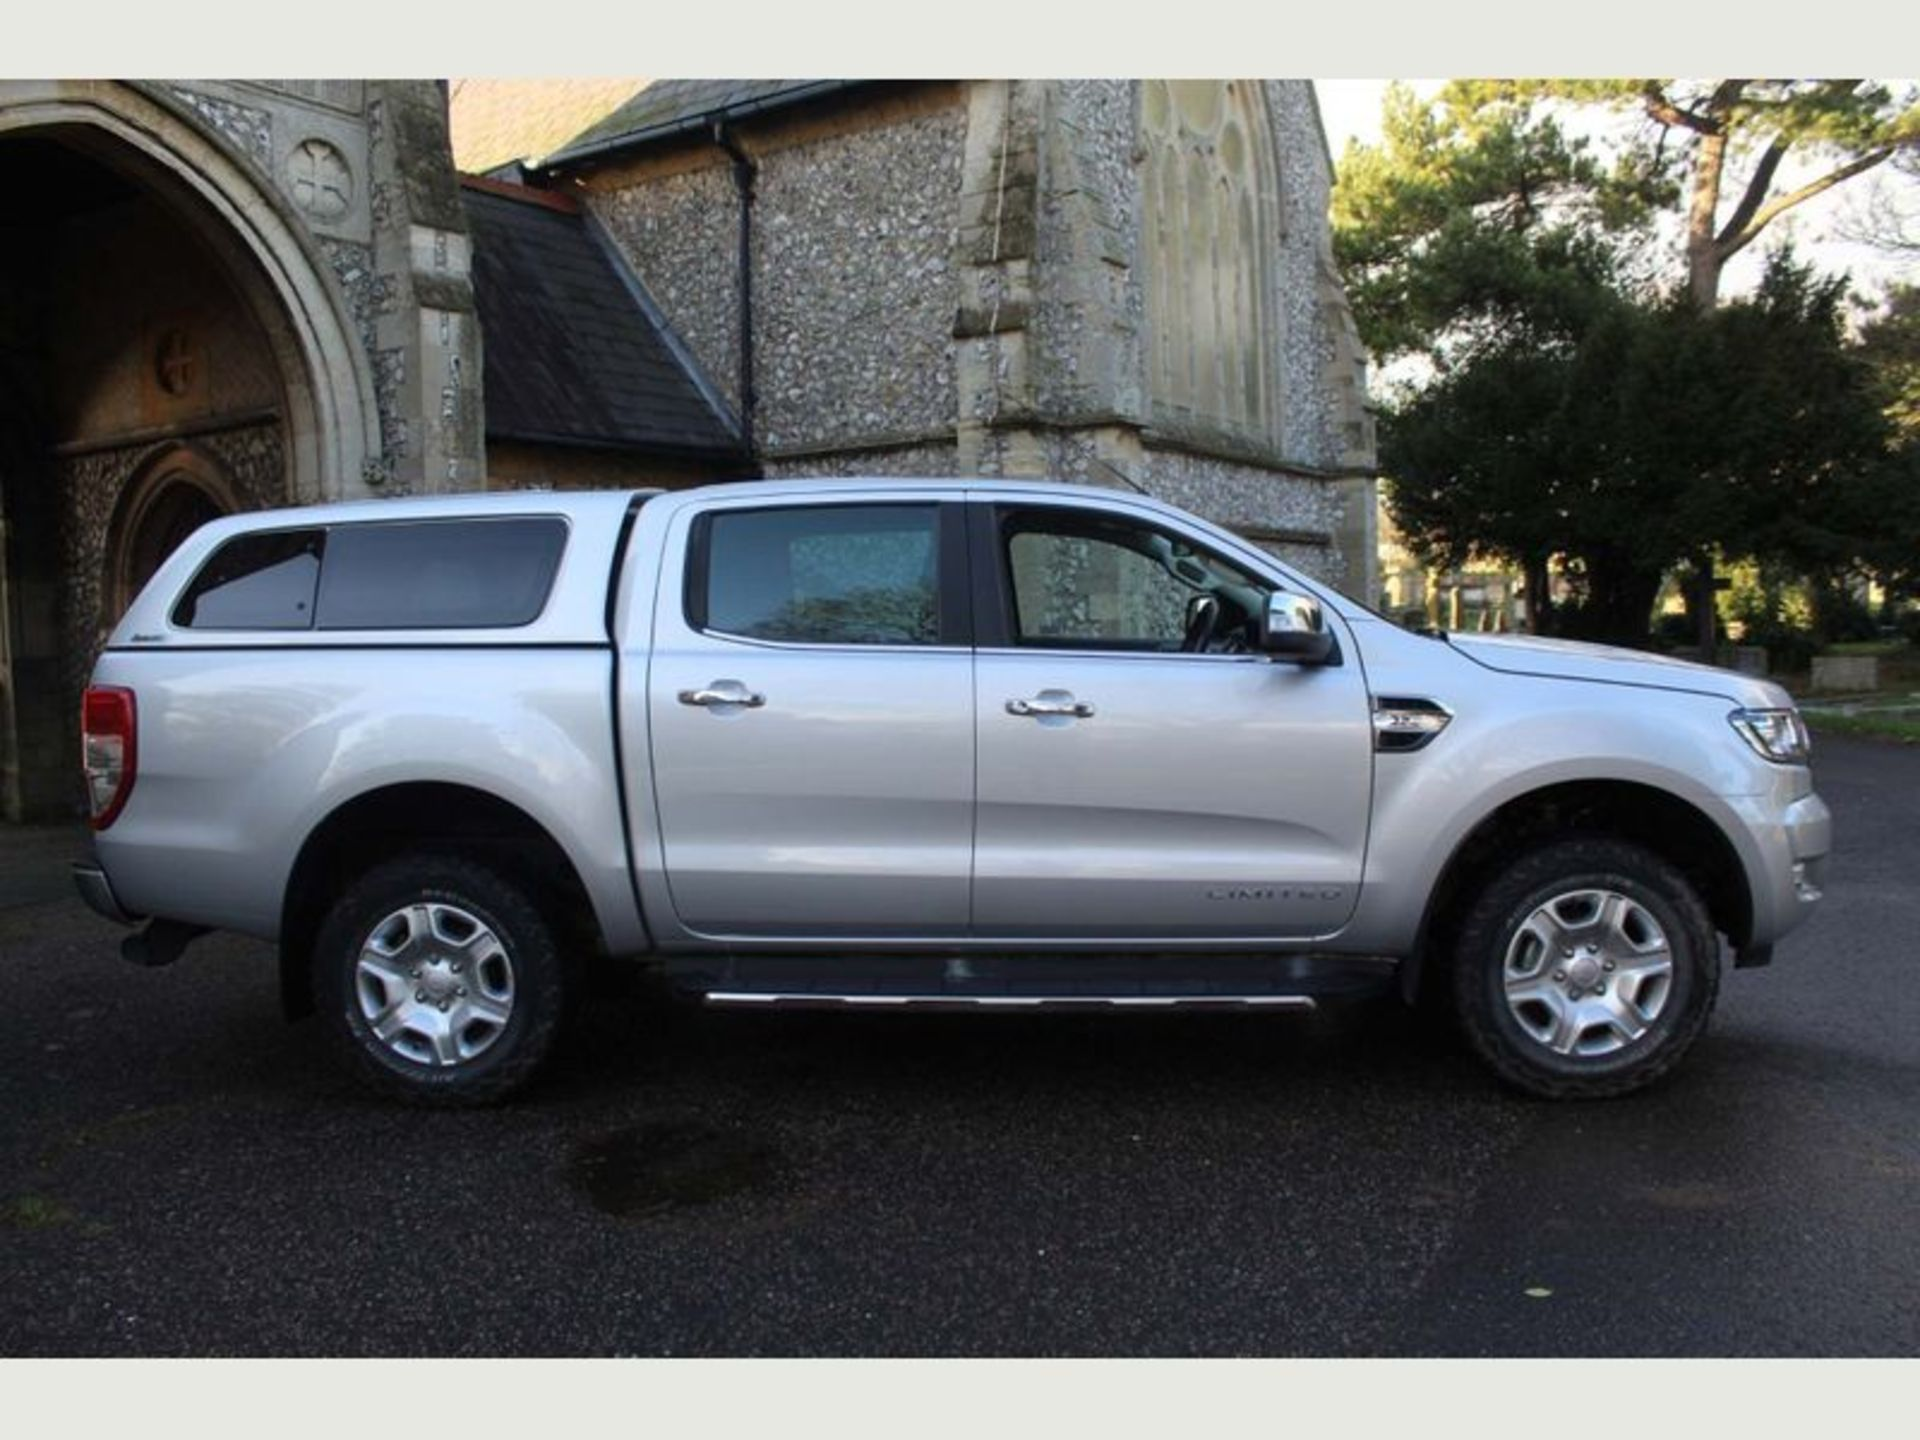 Lot 2 - Ford Ranger 2.2 TDCI XLT Edition Double Cab - 2018 Model - 1 Owner From New - Service History - 4x4